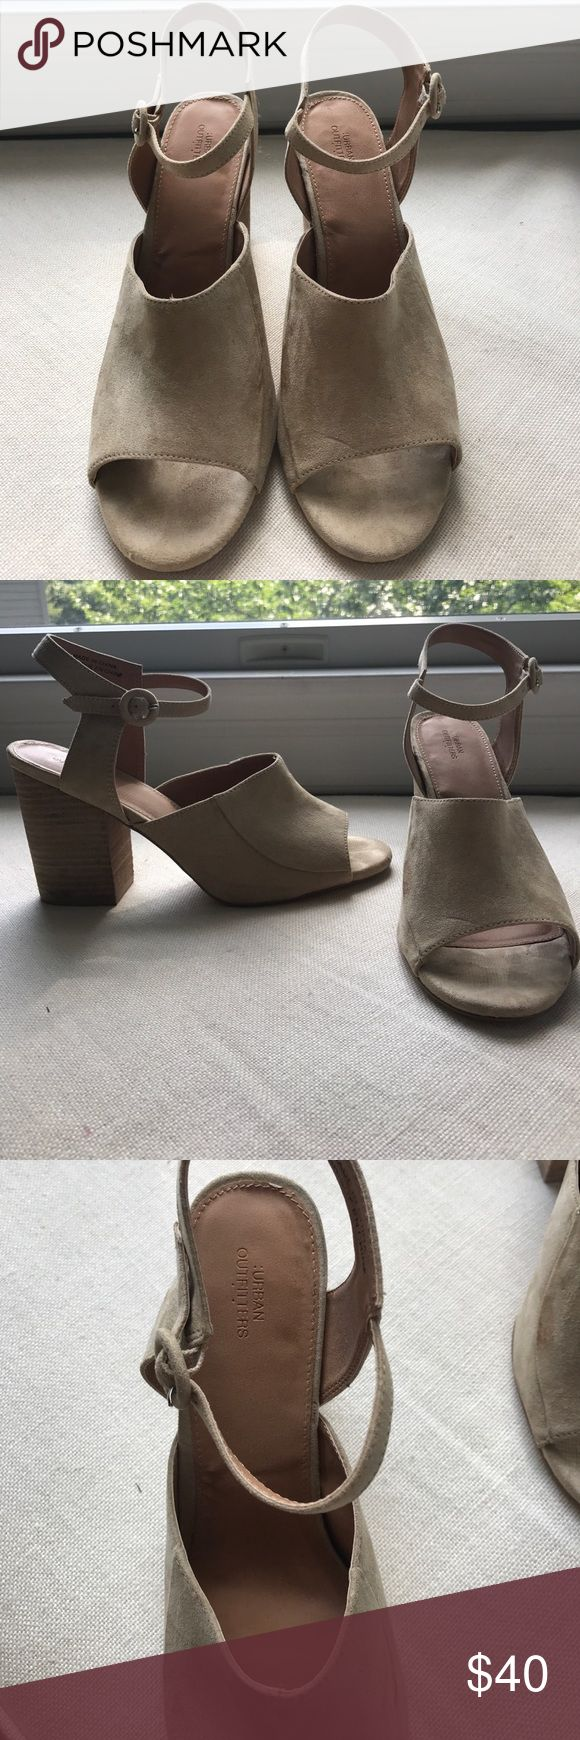 Selling this Urban Outfitters Tan Suede Heels on Poshmark! My username is: kaylacostello. #shopmycloset #poshmark #fashion #shopping #style #forsale #Urban Outfitters #Shoes